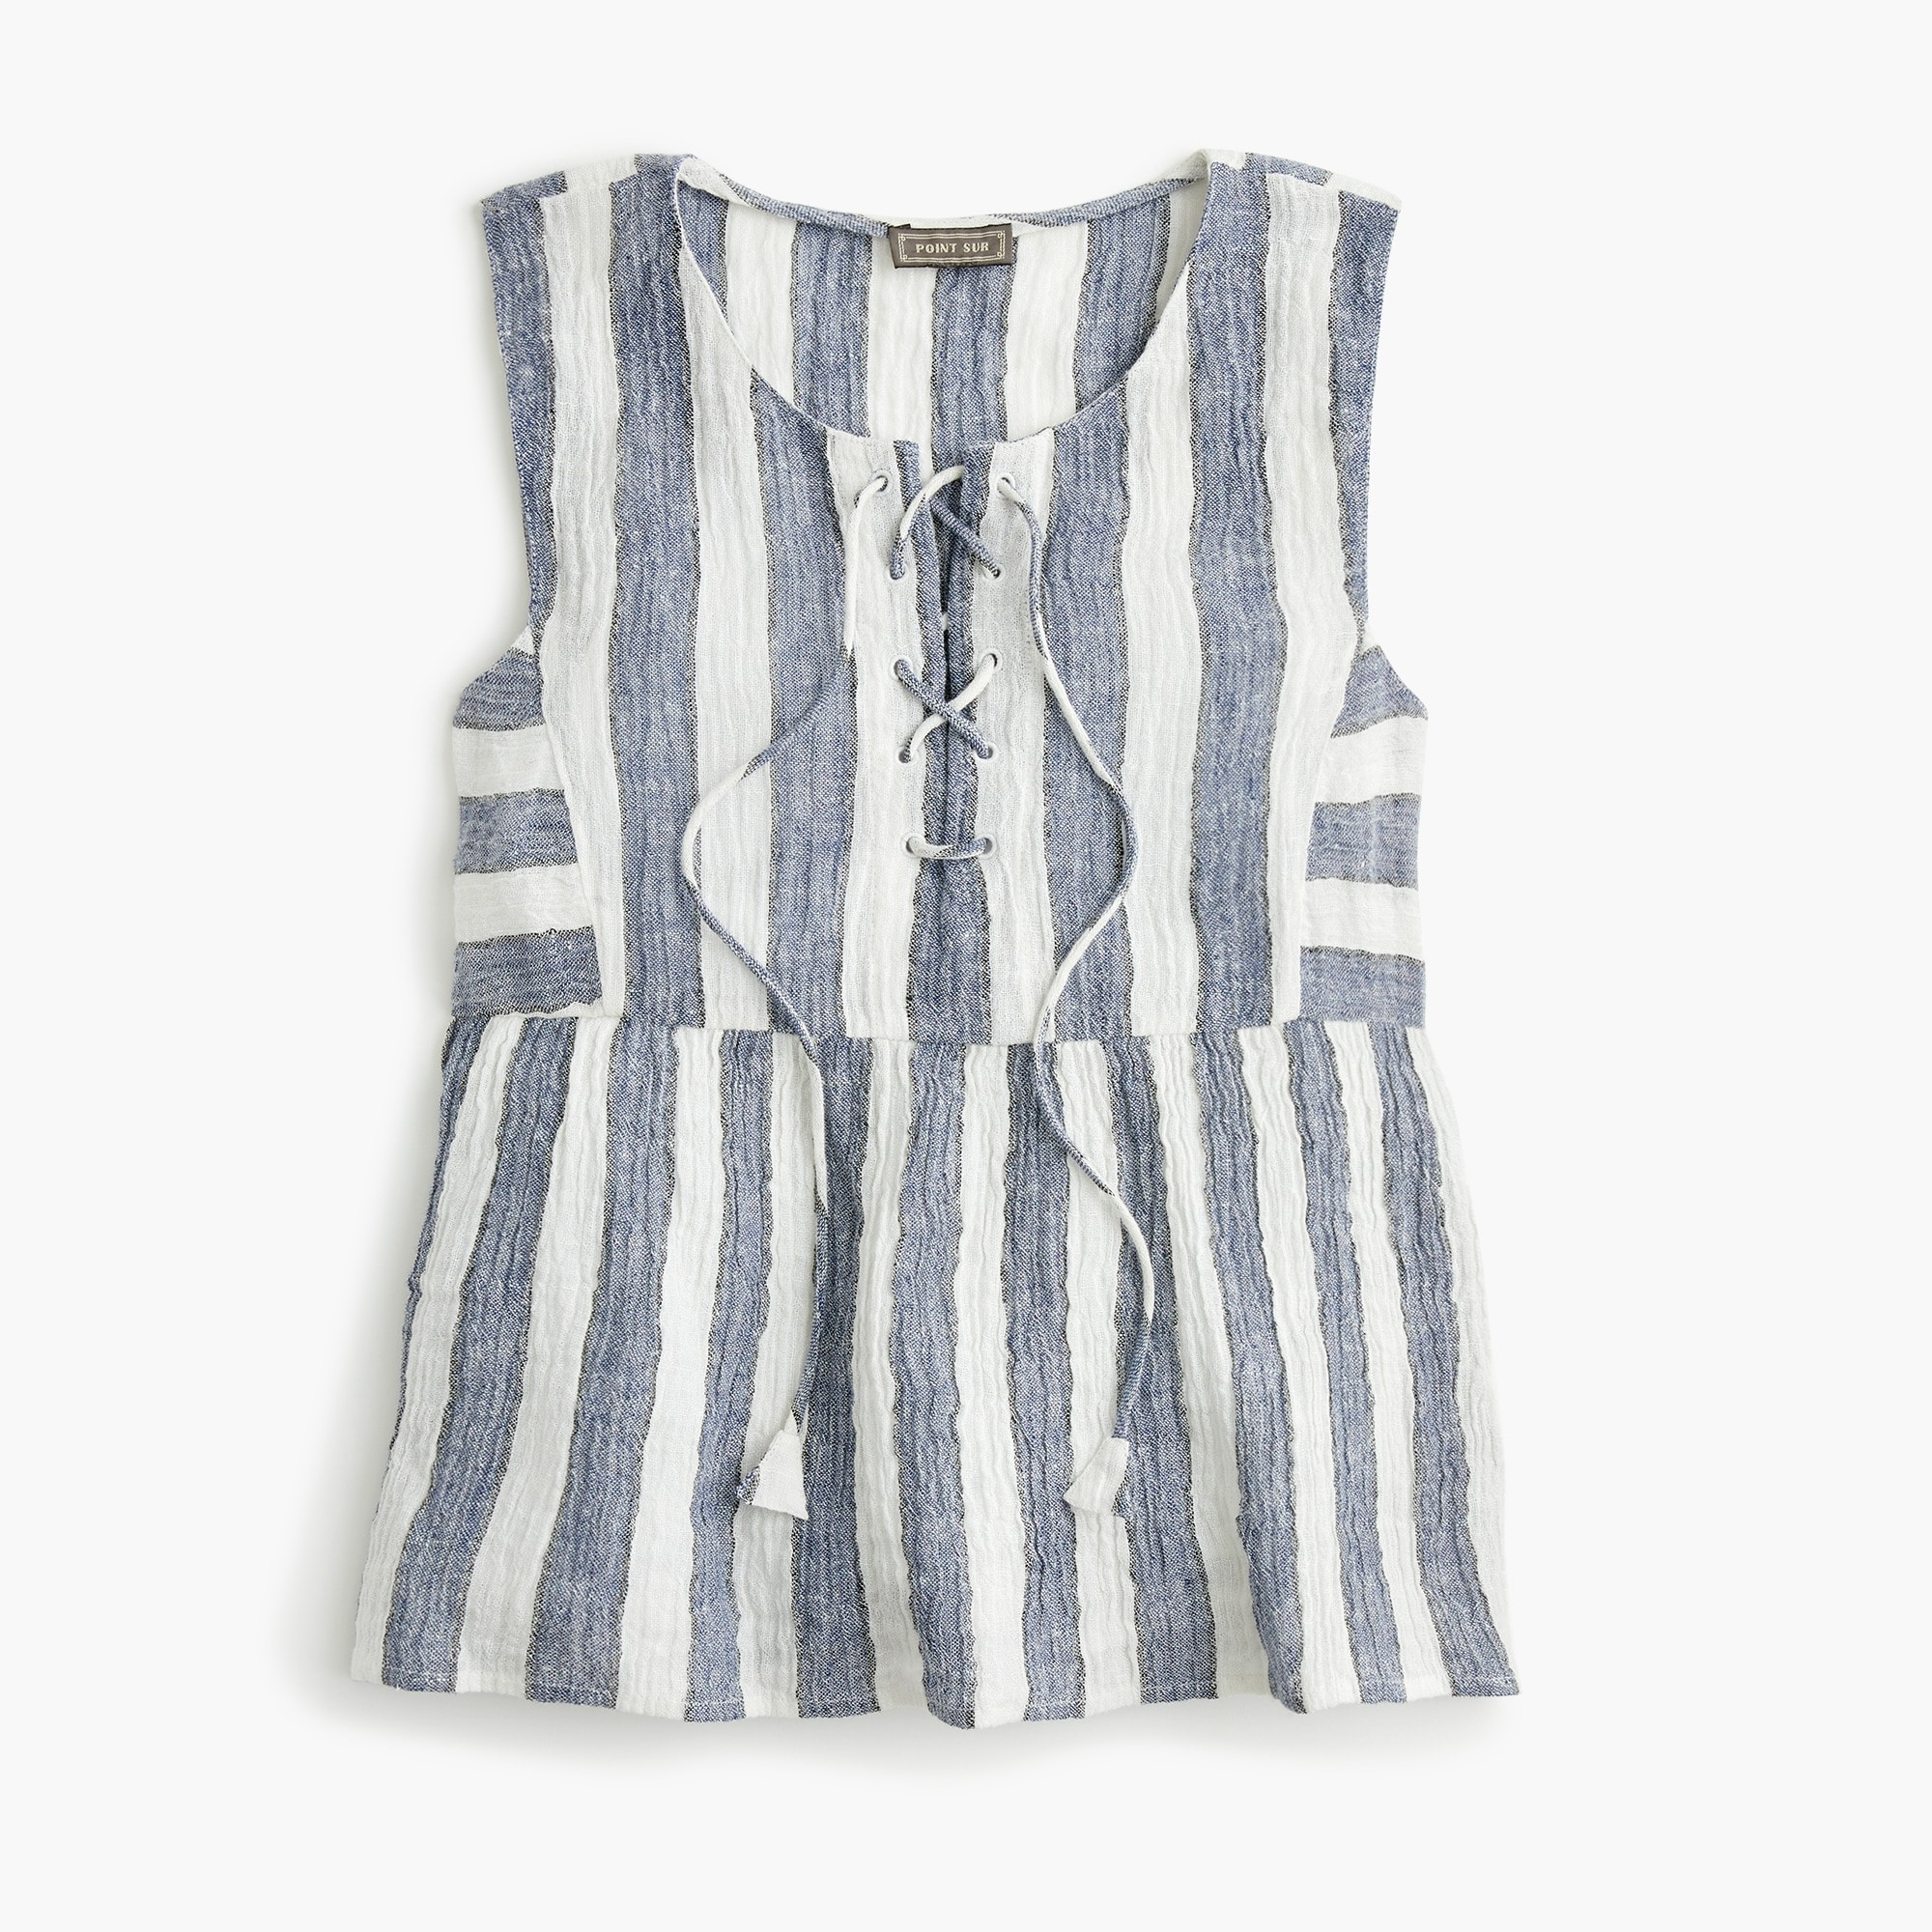 Image 1 for Tall Point Sur tie-front top in striped linen